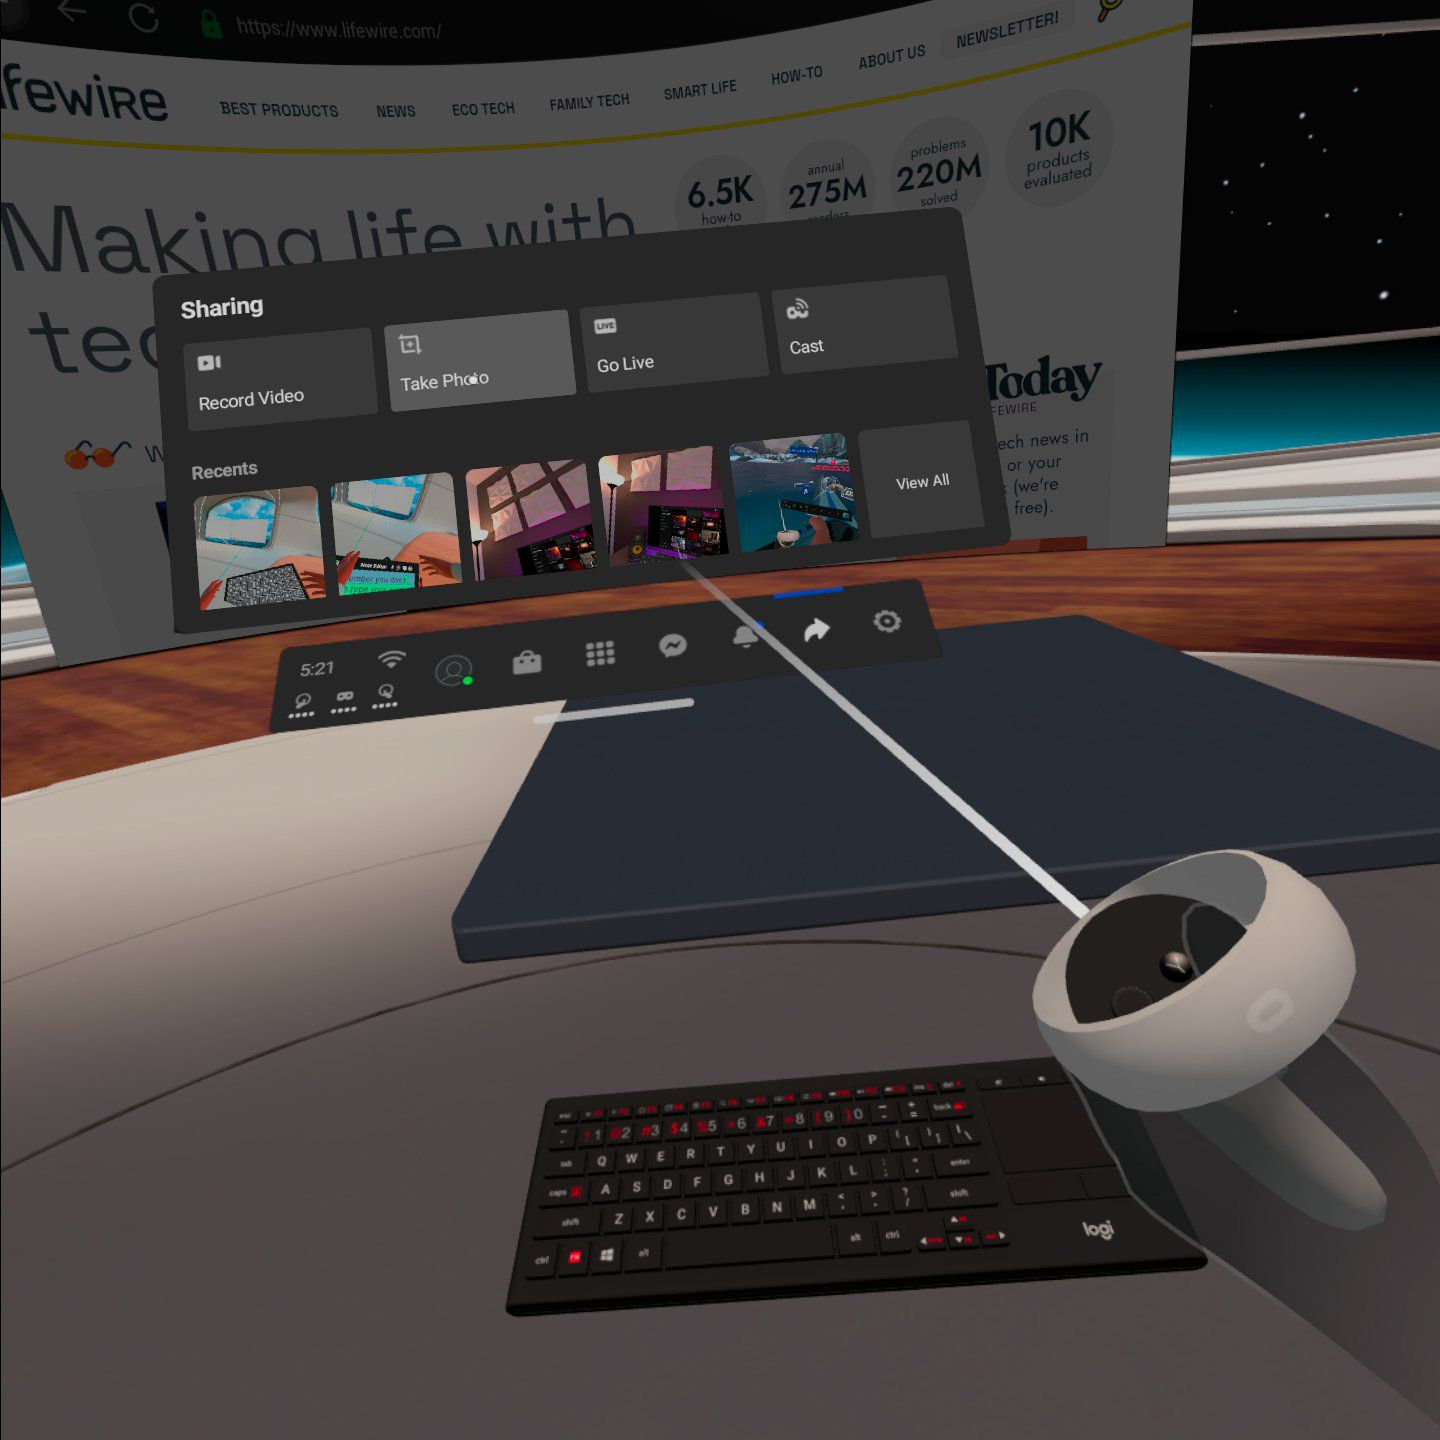 Using a web browser and the Logitech K830 keyboard in Oculus VR